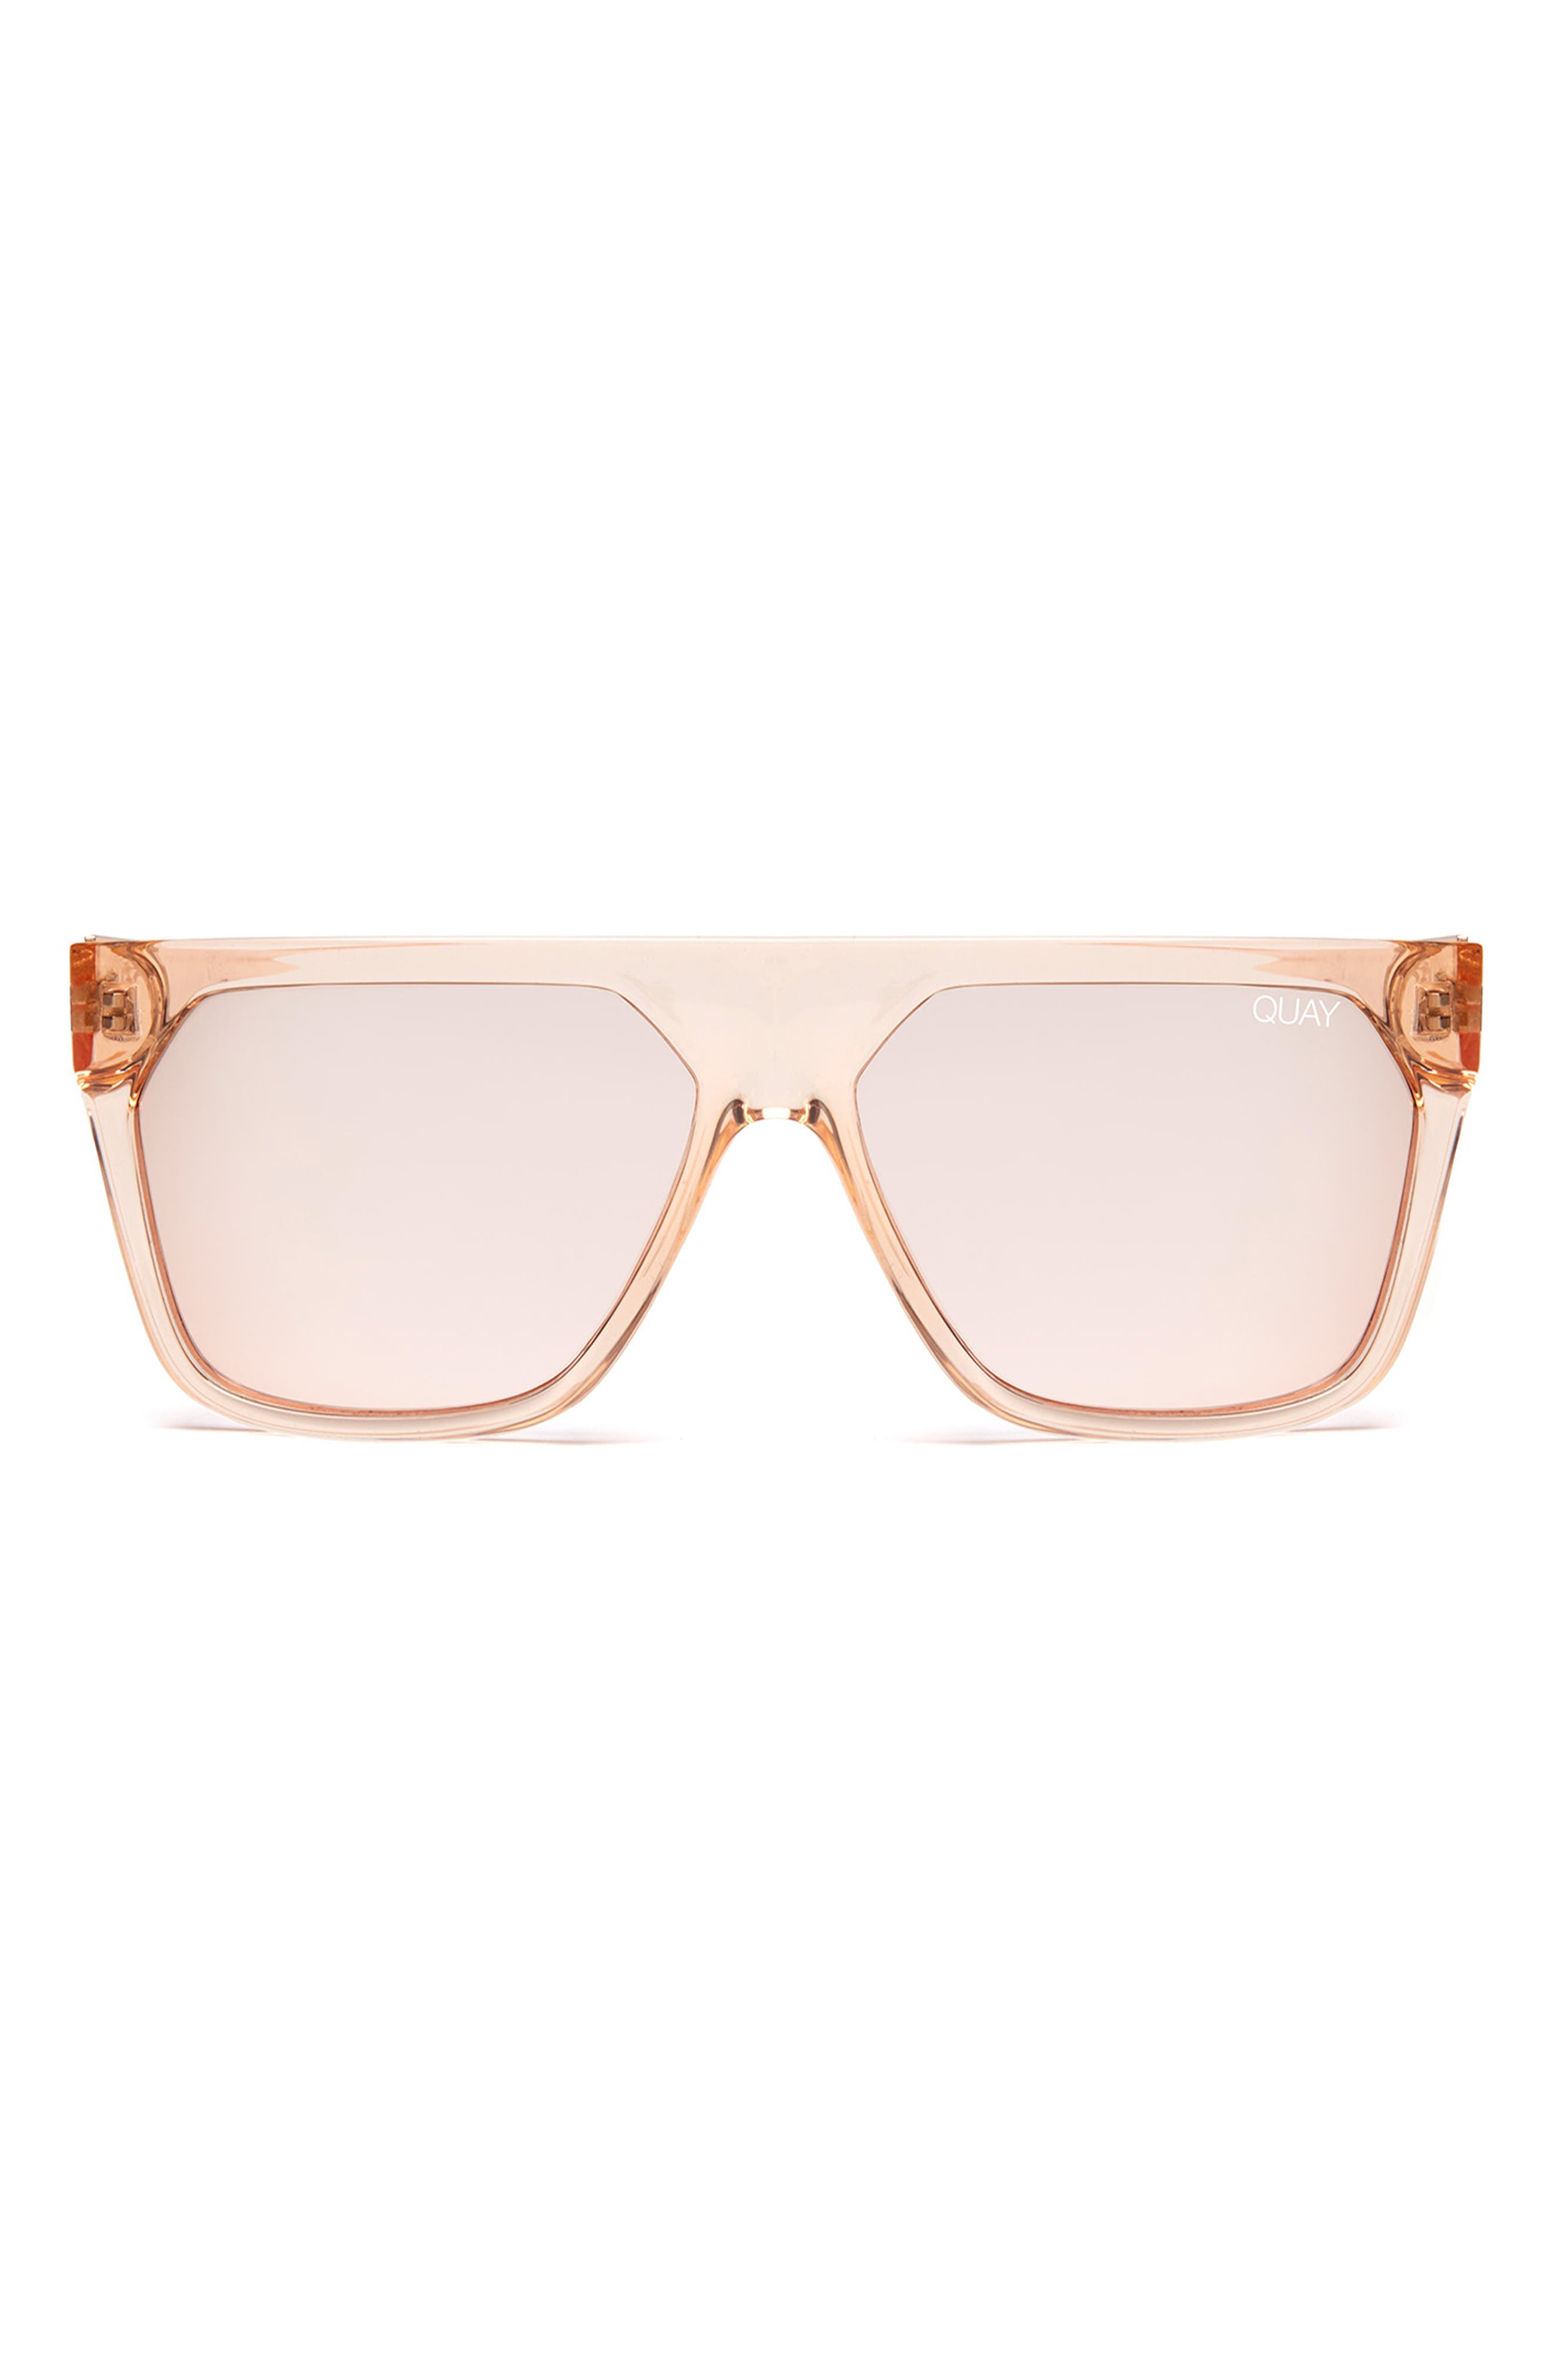 QUAY AUSTRALIA, x Jaclyn Hill Very Busy 58mm Shield Sunglasses, Alternate thumbnail 2, color, CHAMPAGNE / ROSE